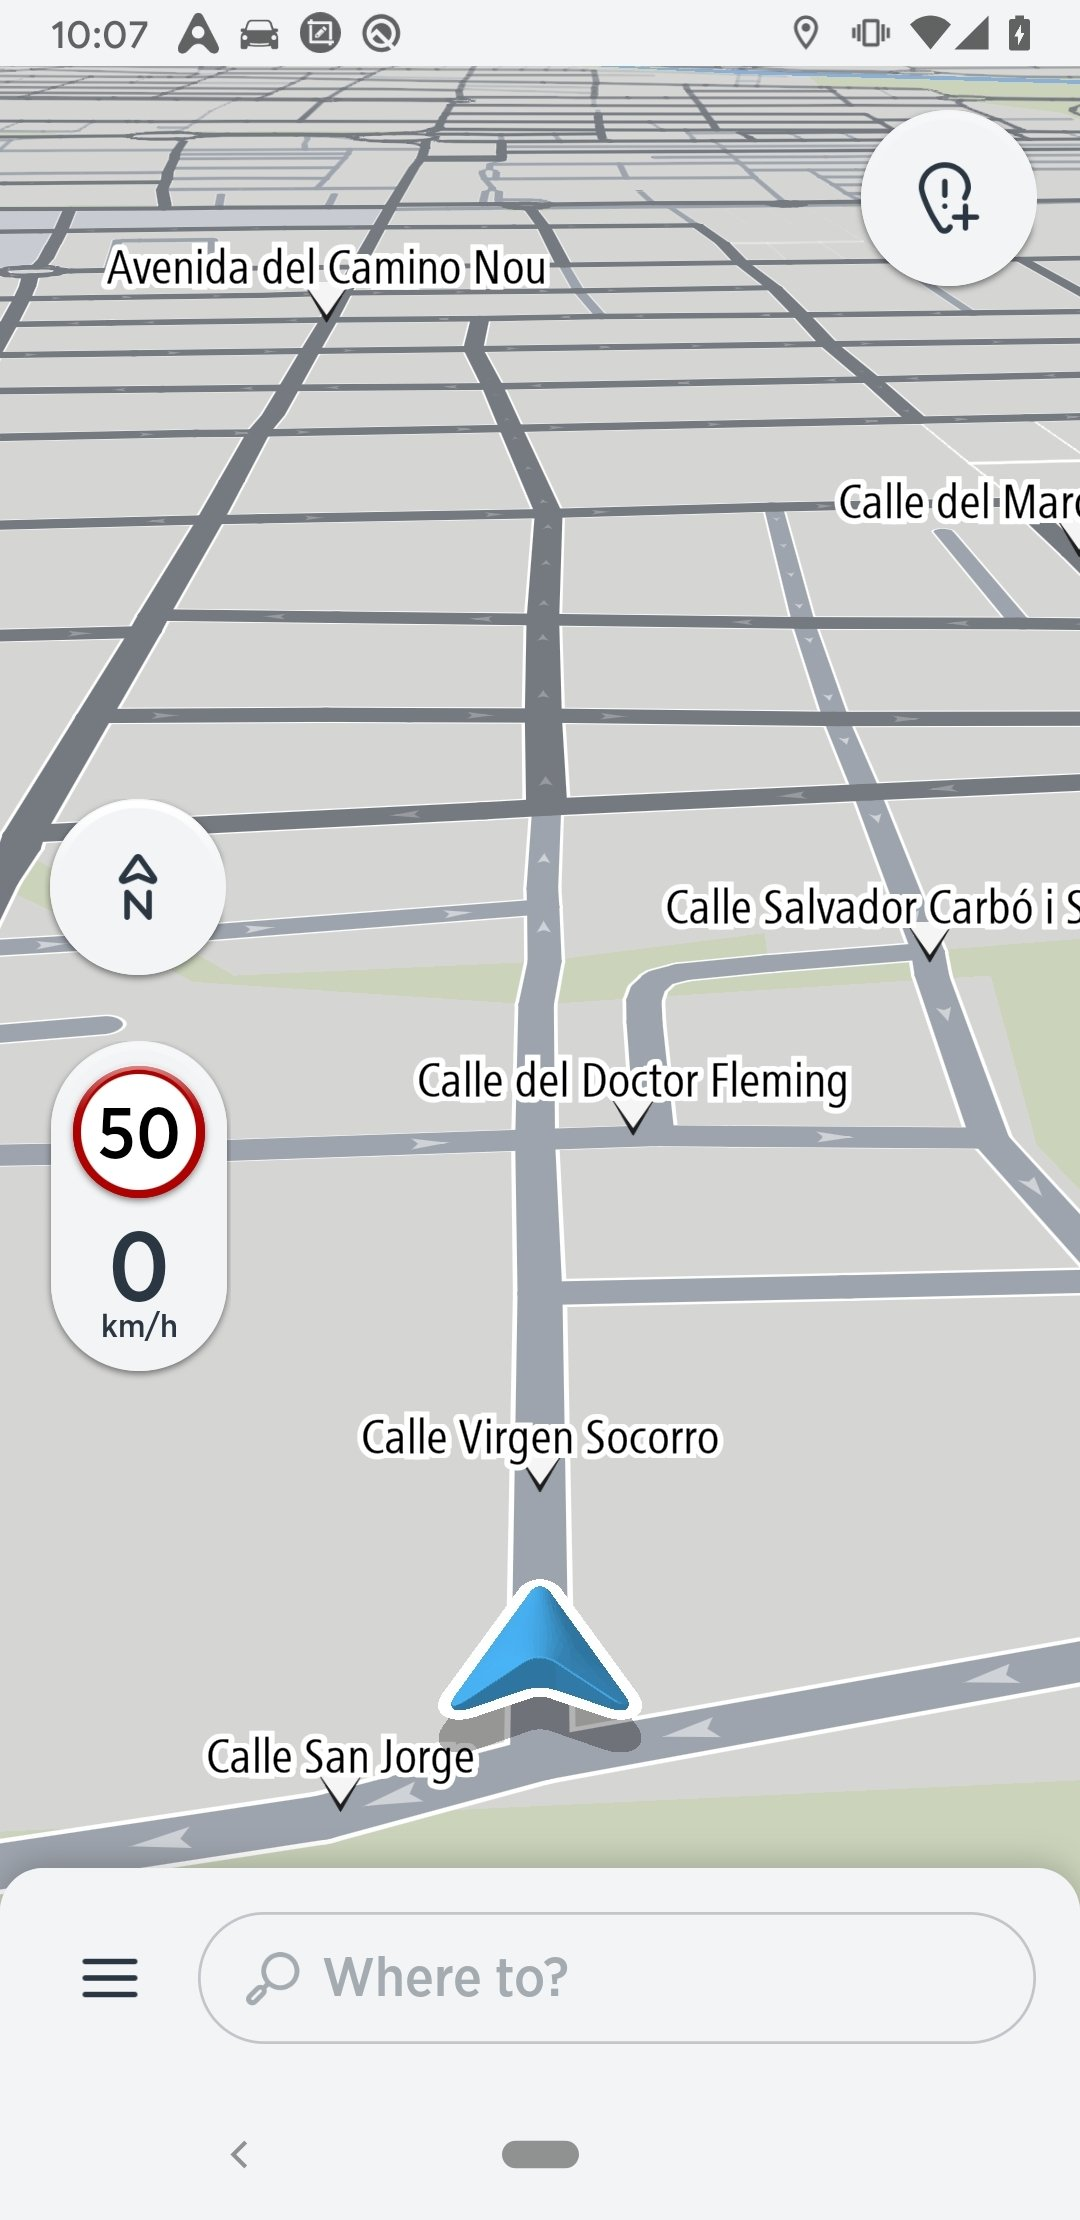 TomTom Speed Cameras Android image 5